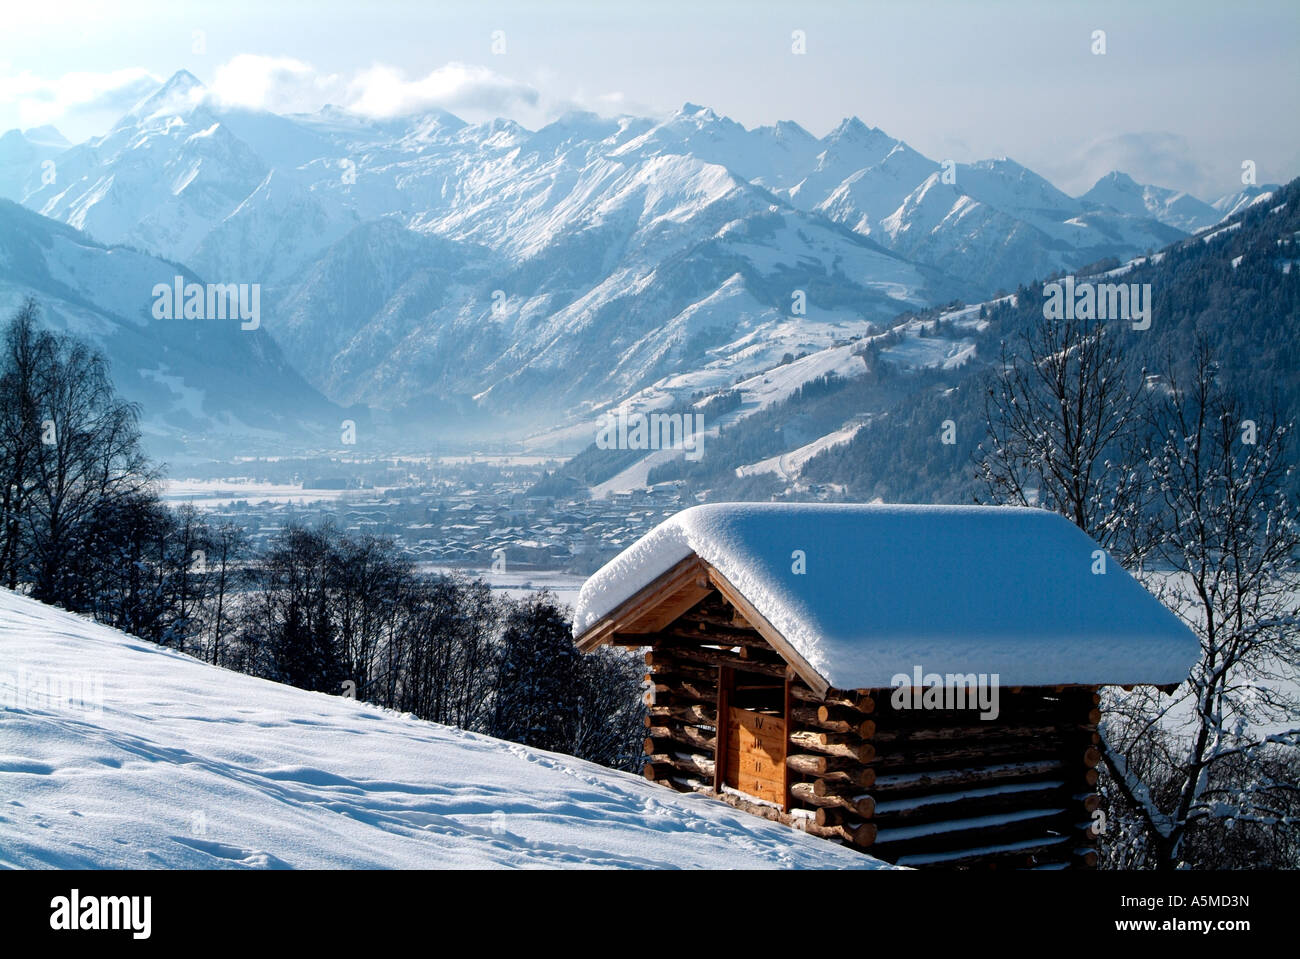 Town of Kaprun and Grossglockner group of mountains Austria Stock Photo